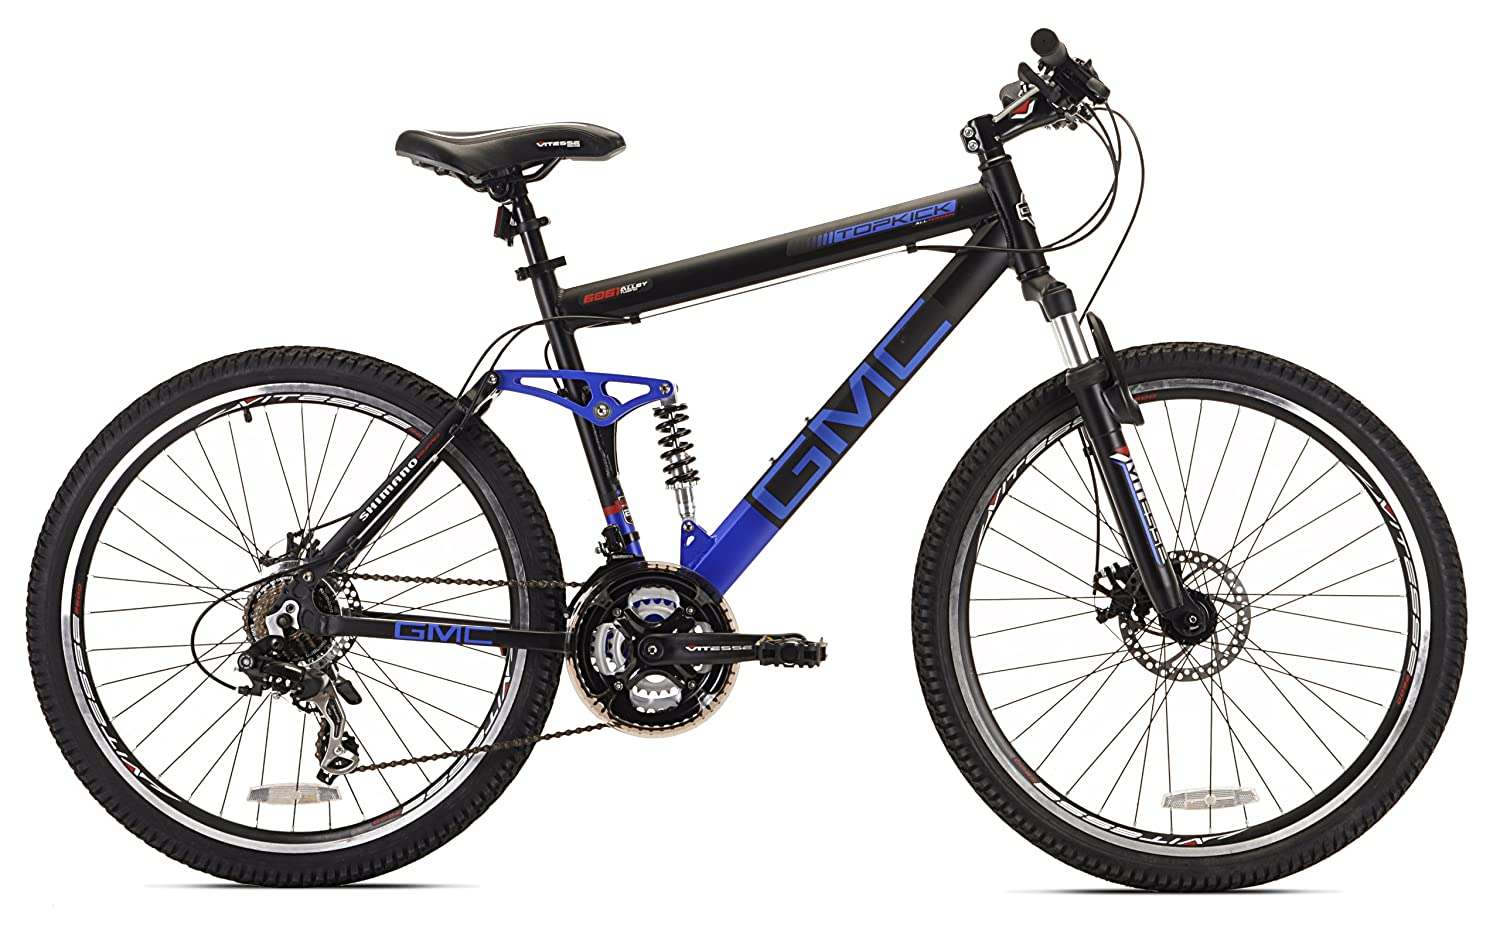 GMC Topkick Mountain Bike Review